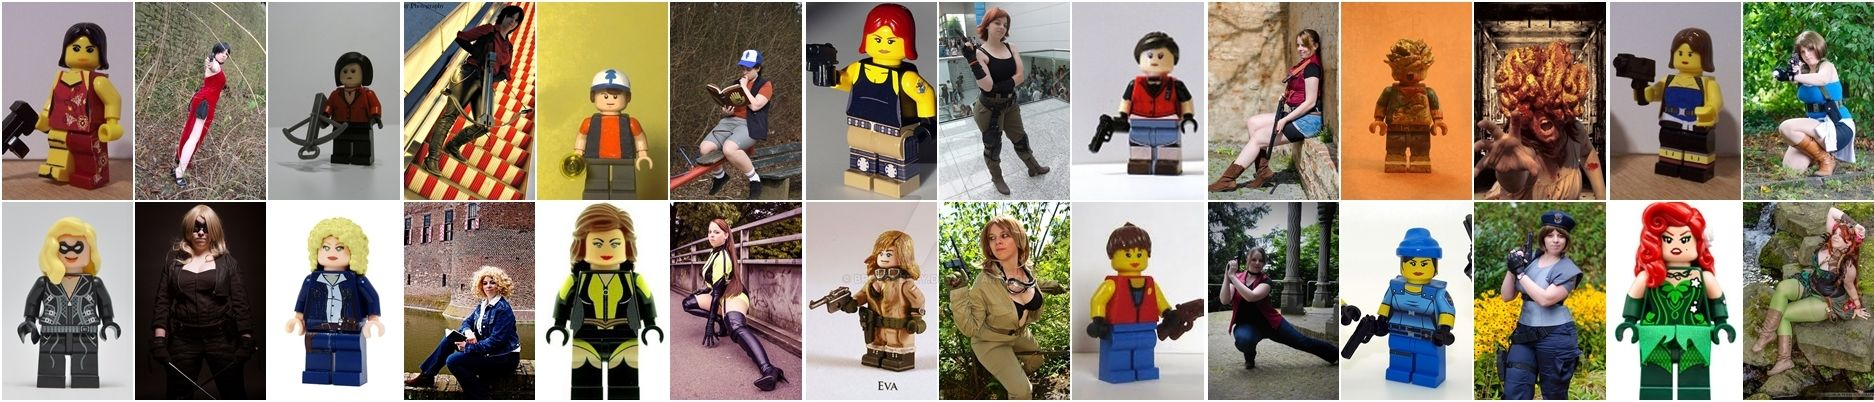 Lego Cosplay by brokenbfly